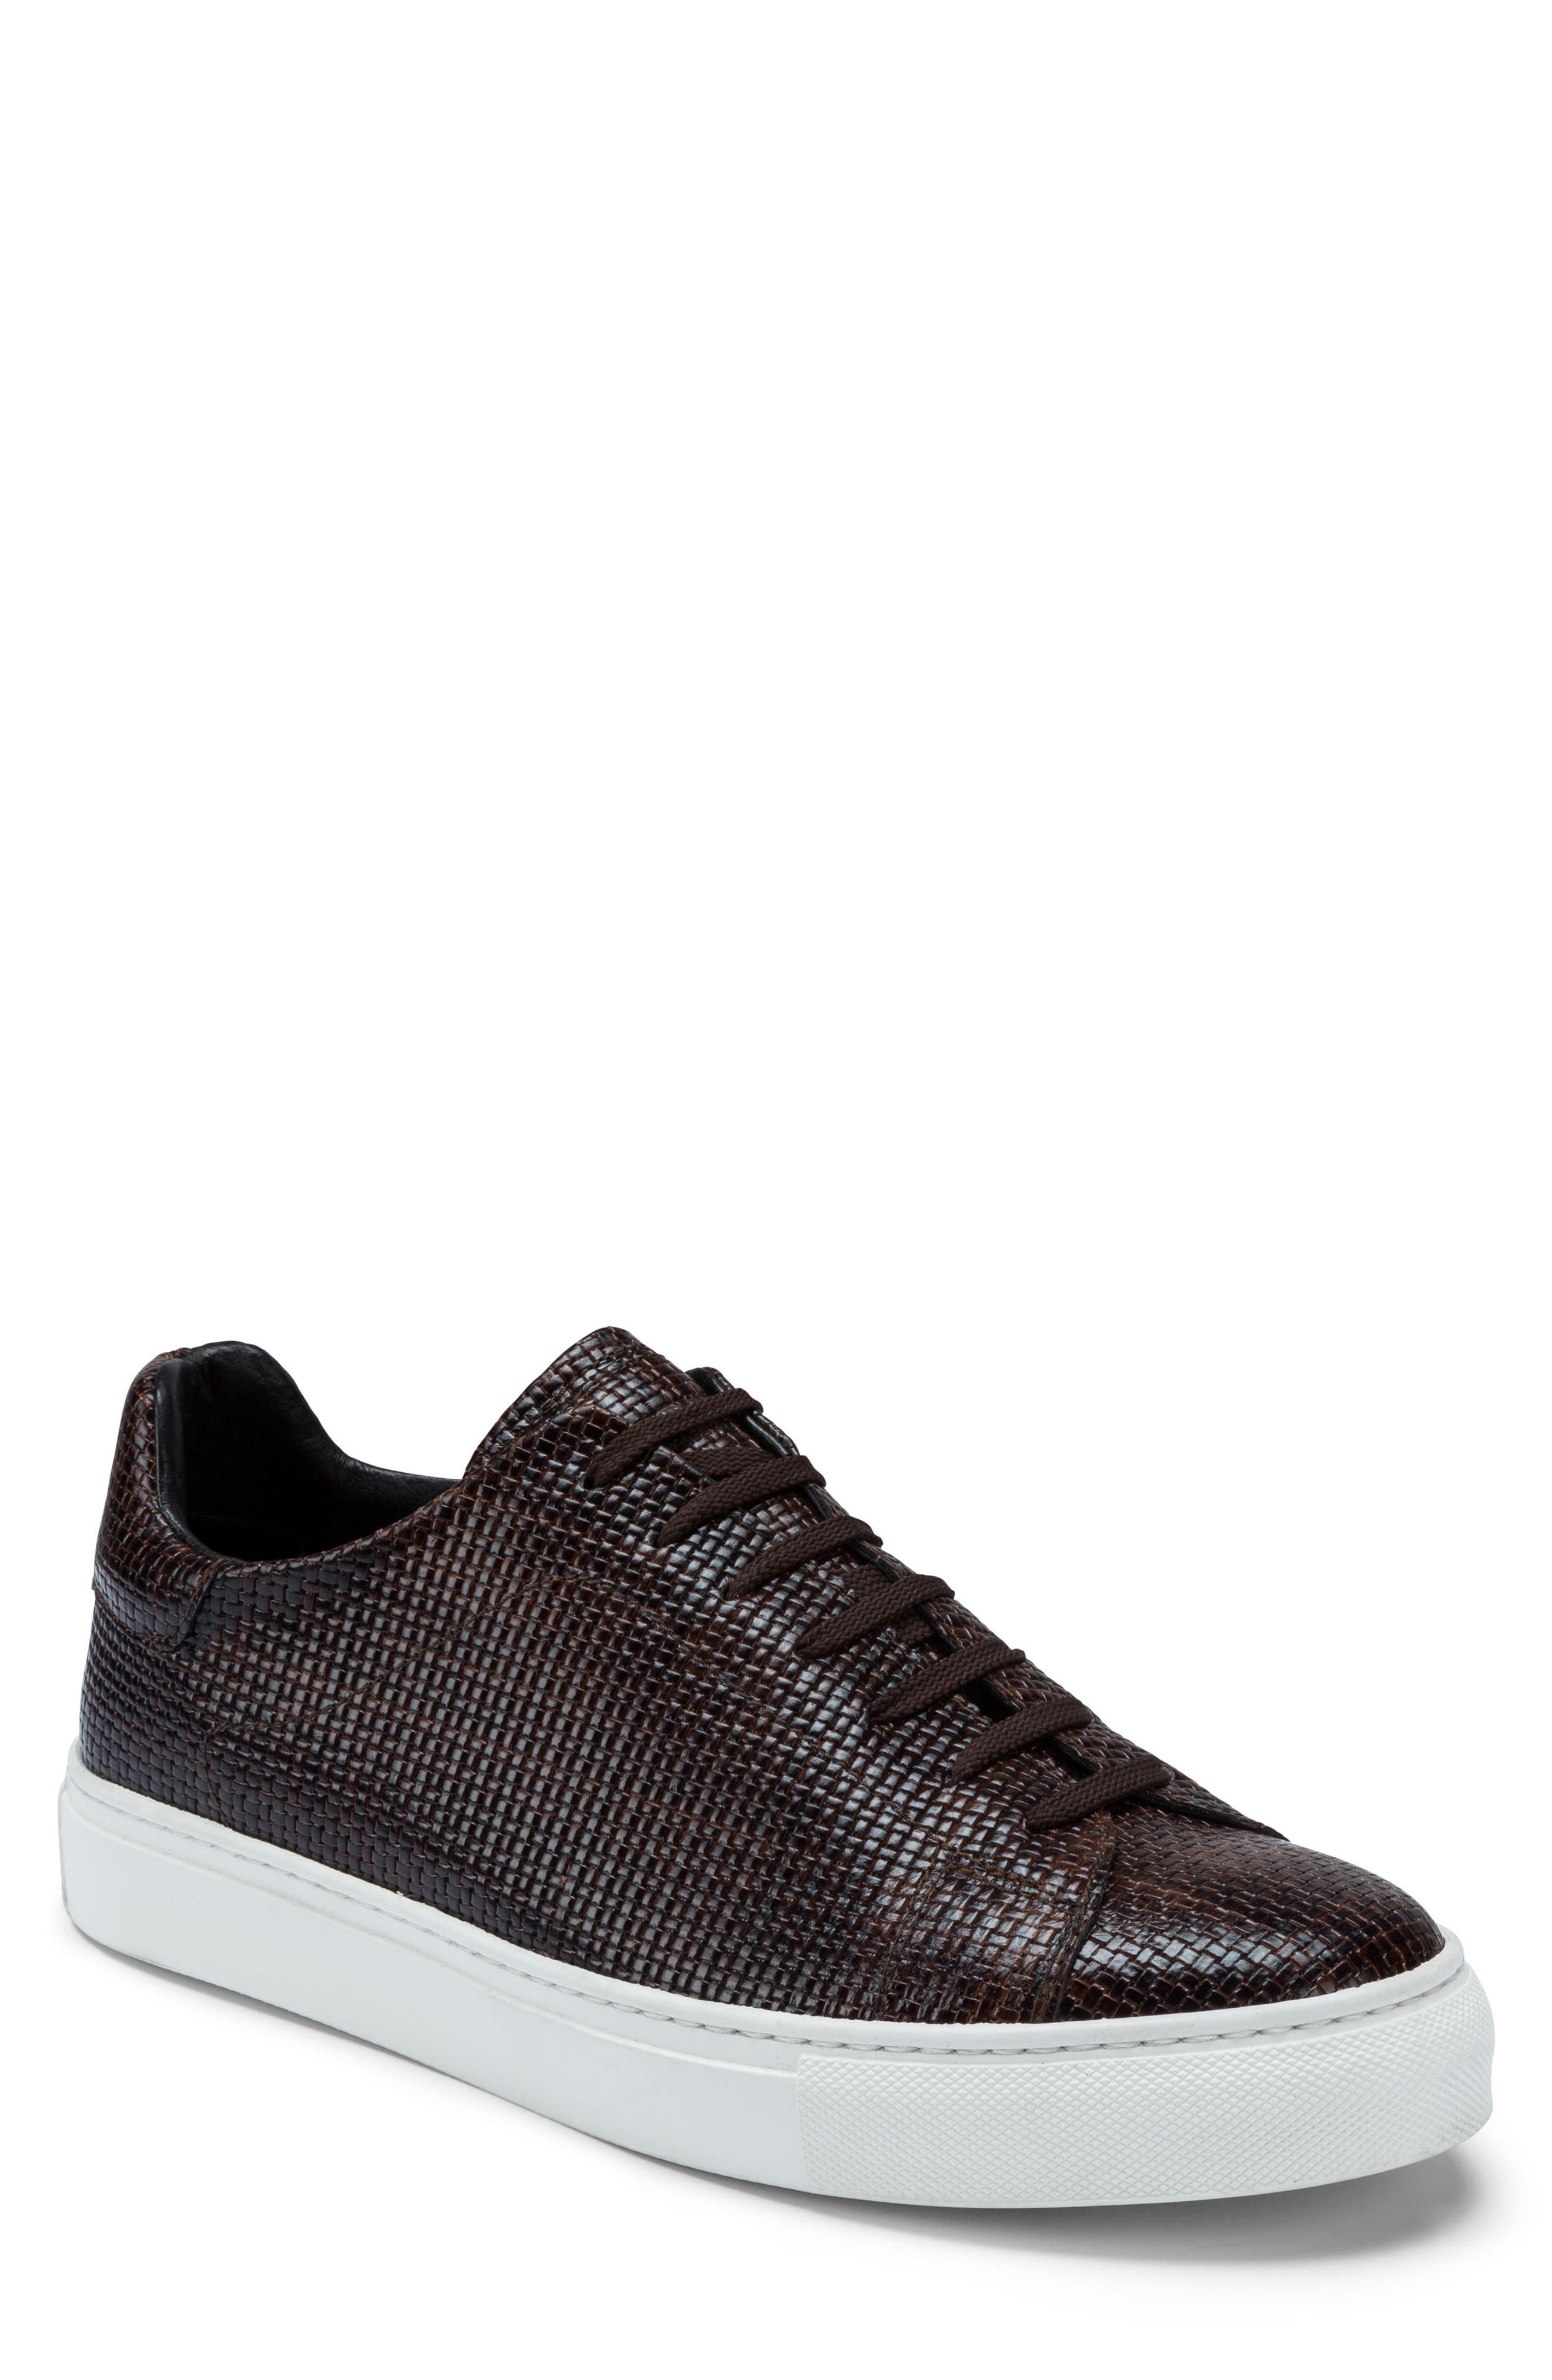 Alternate Image 1 Selected - Bugatchi Wimbledon Sneaker (Men)